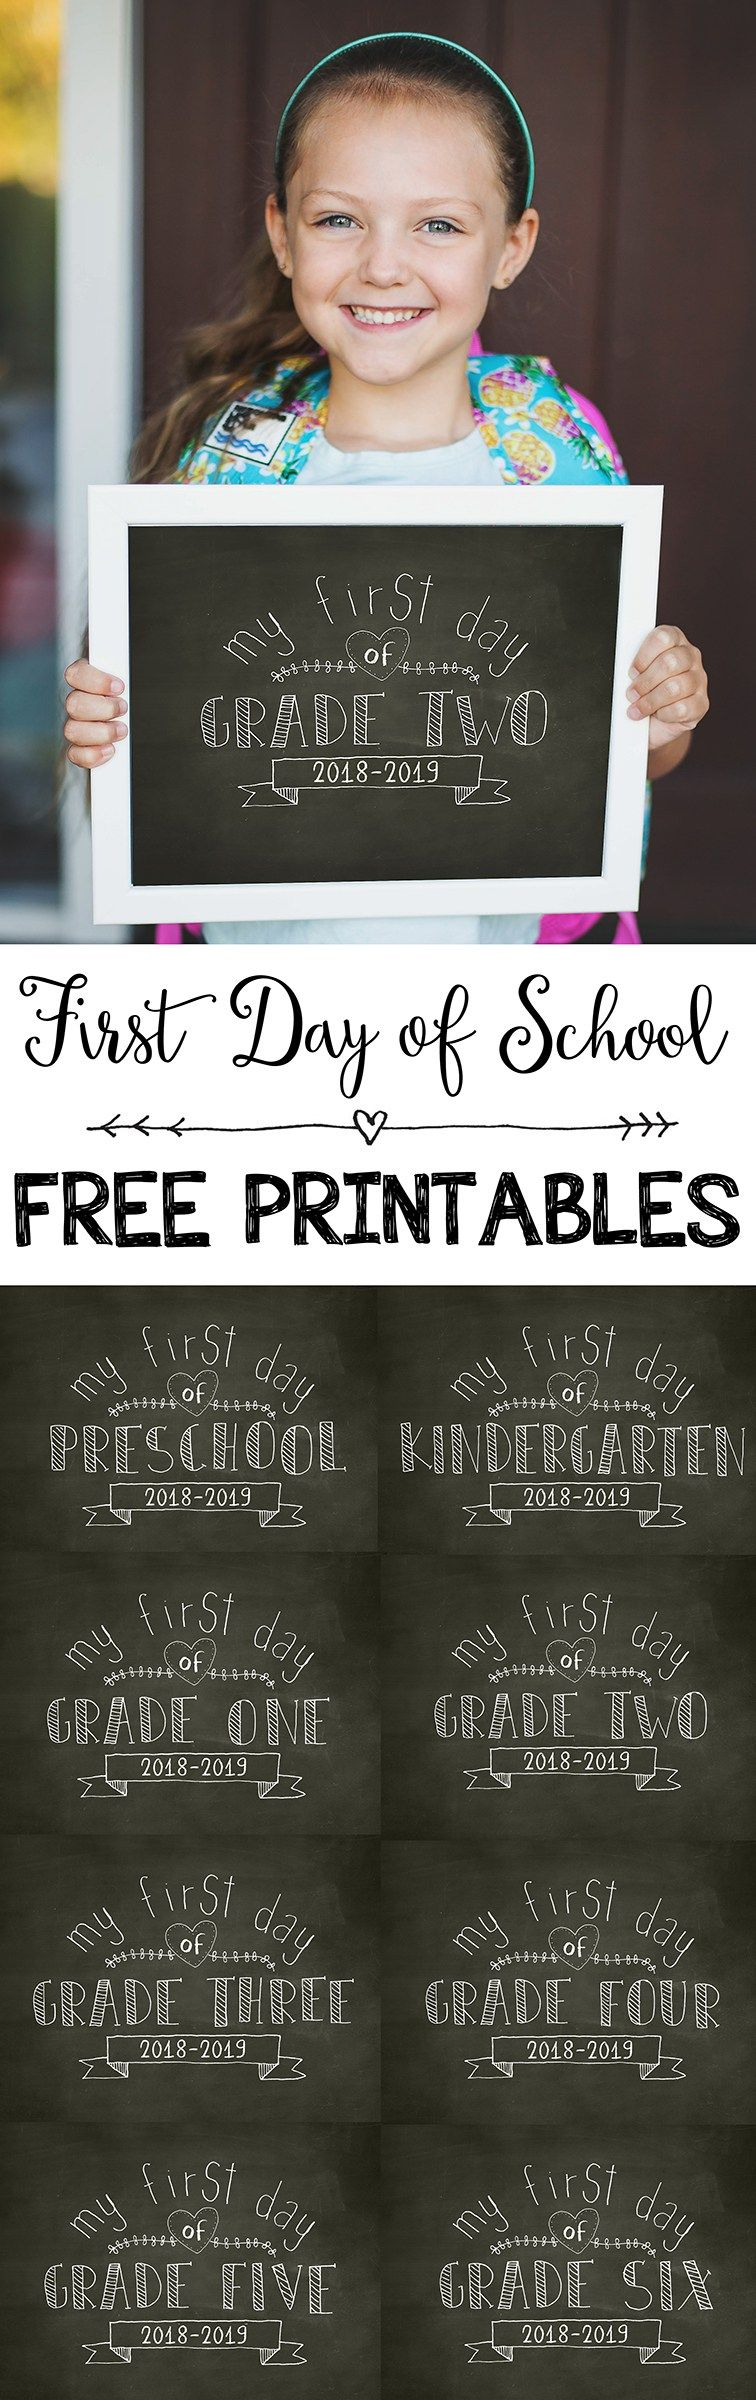 DIY || FREE First Day of School Chalkboard Printables *Updated for 2018-2019* - Our Humanist Home